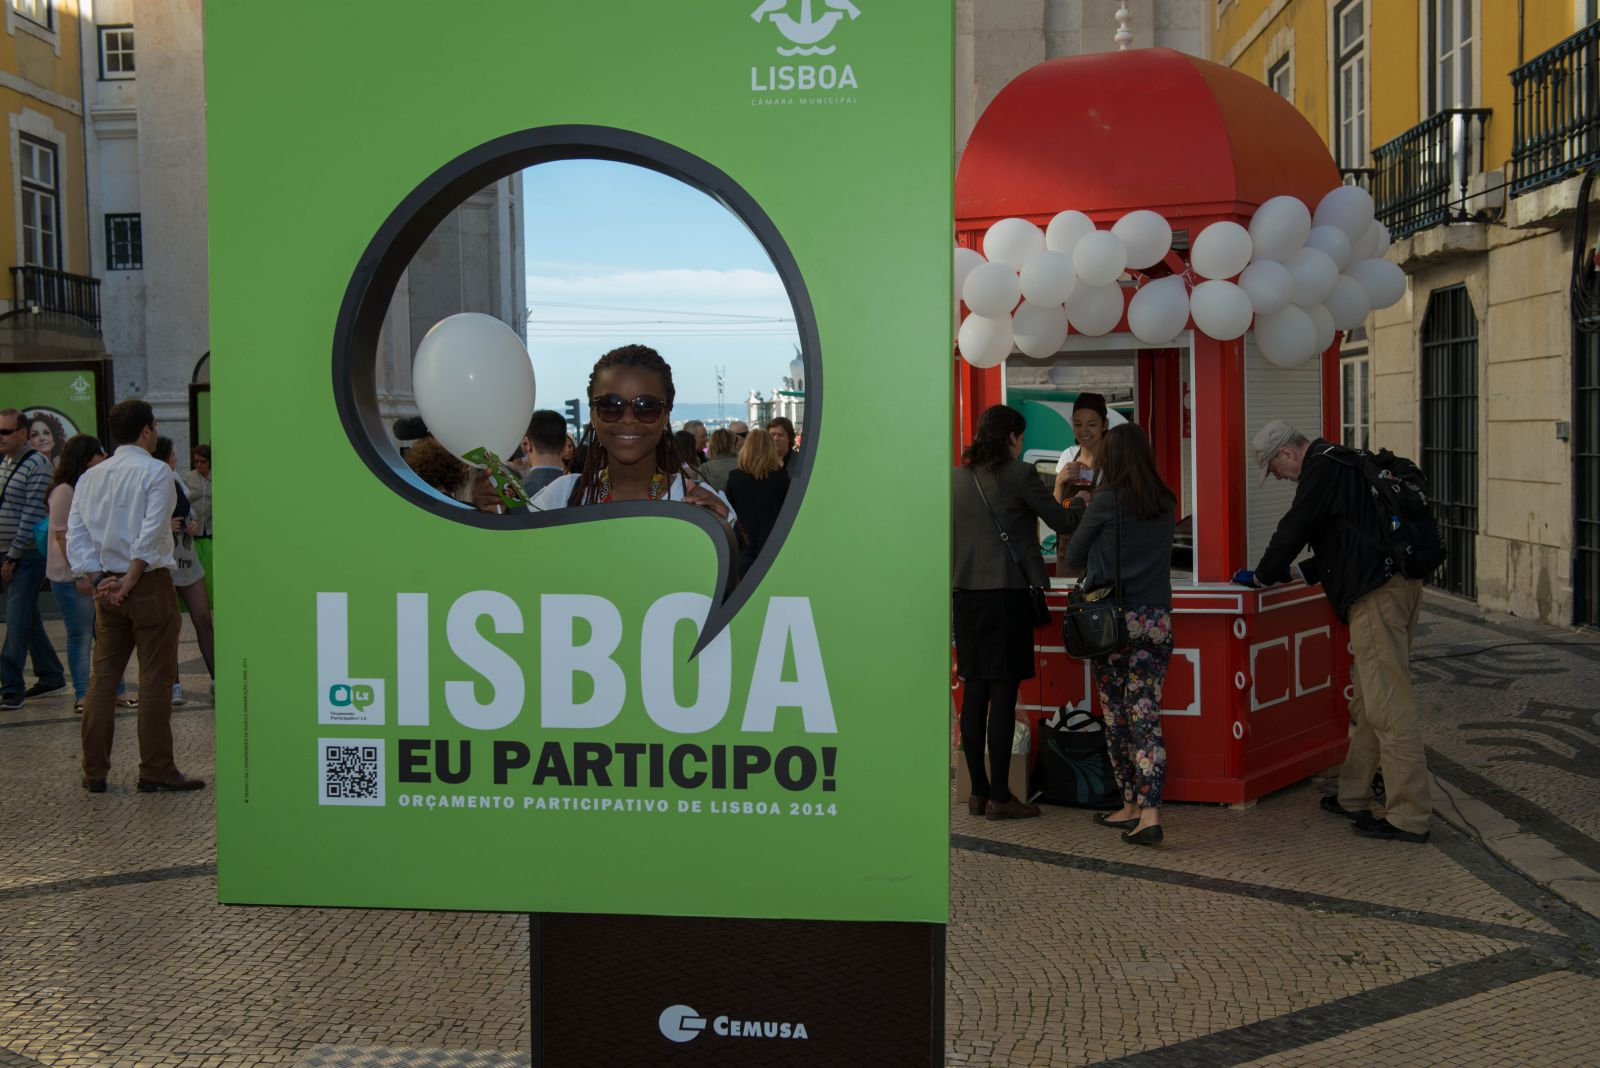 Promoting Lisboa Participa